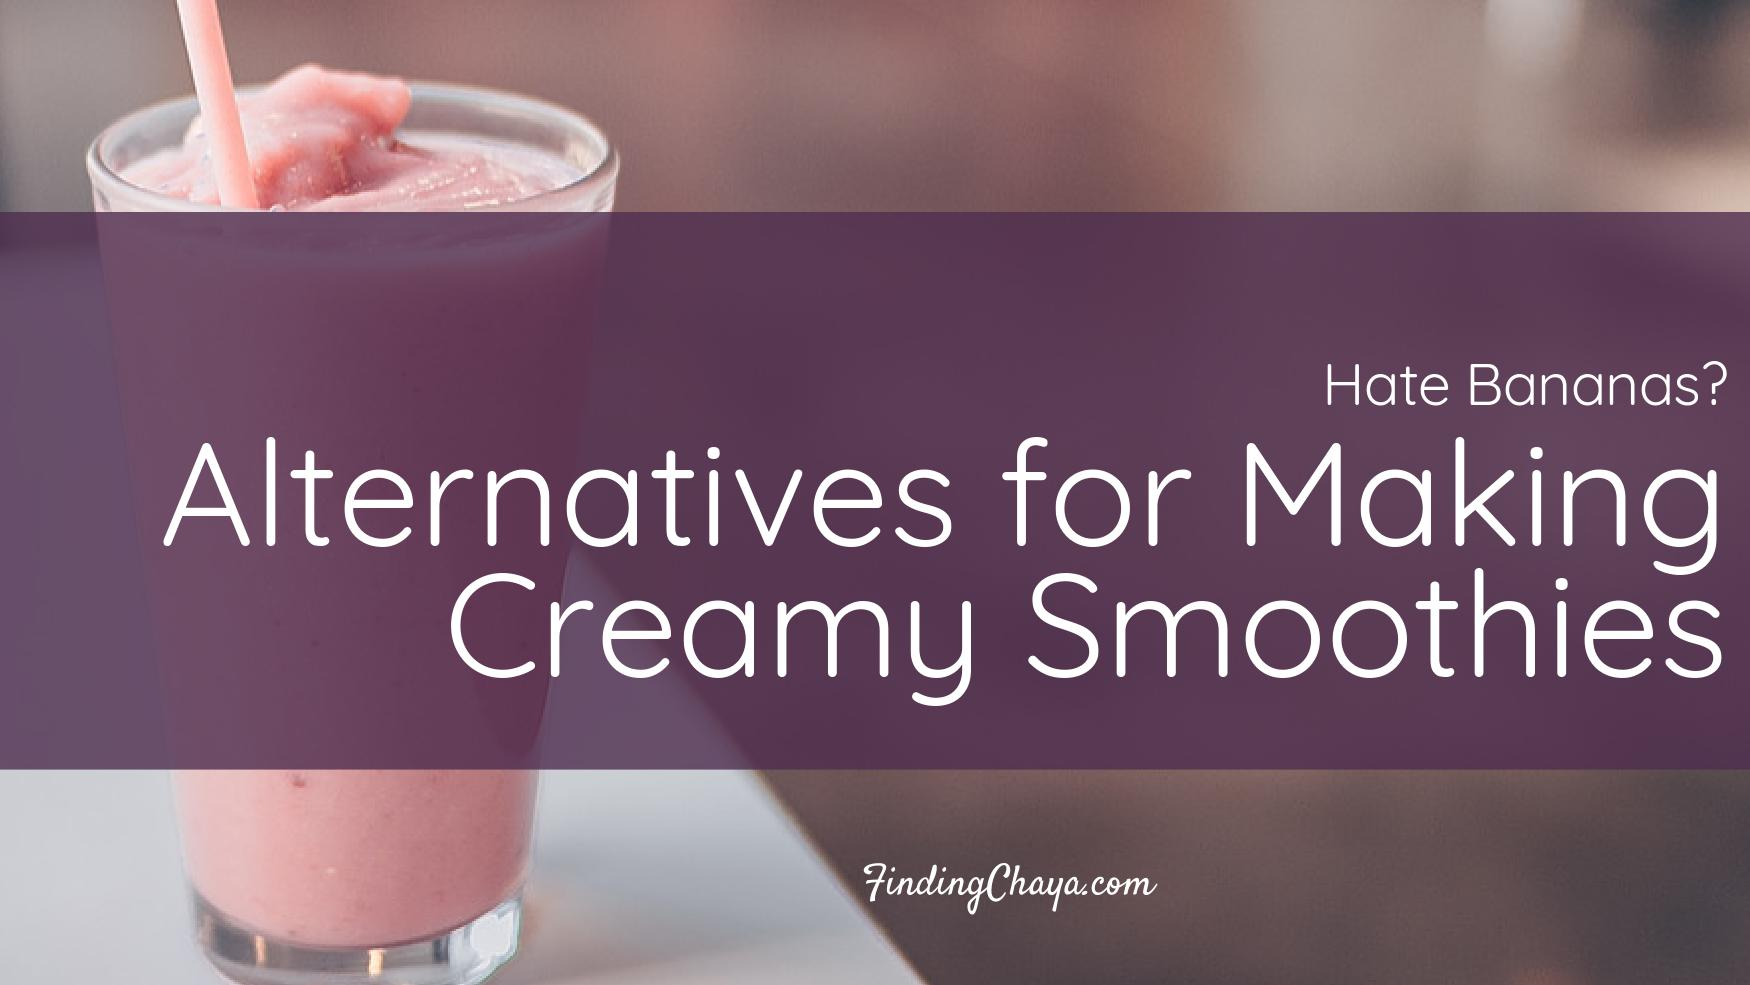 Hate Bananas? Alternatives for Making Creamy Smoothies